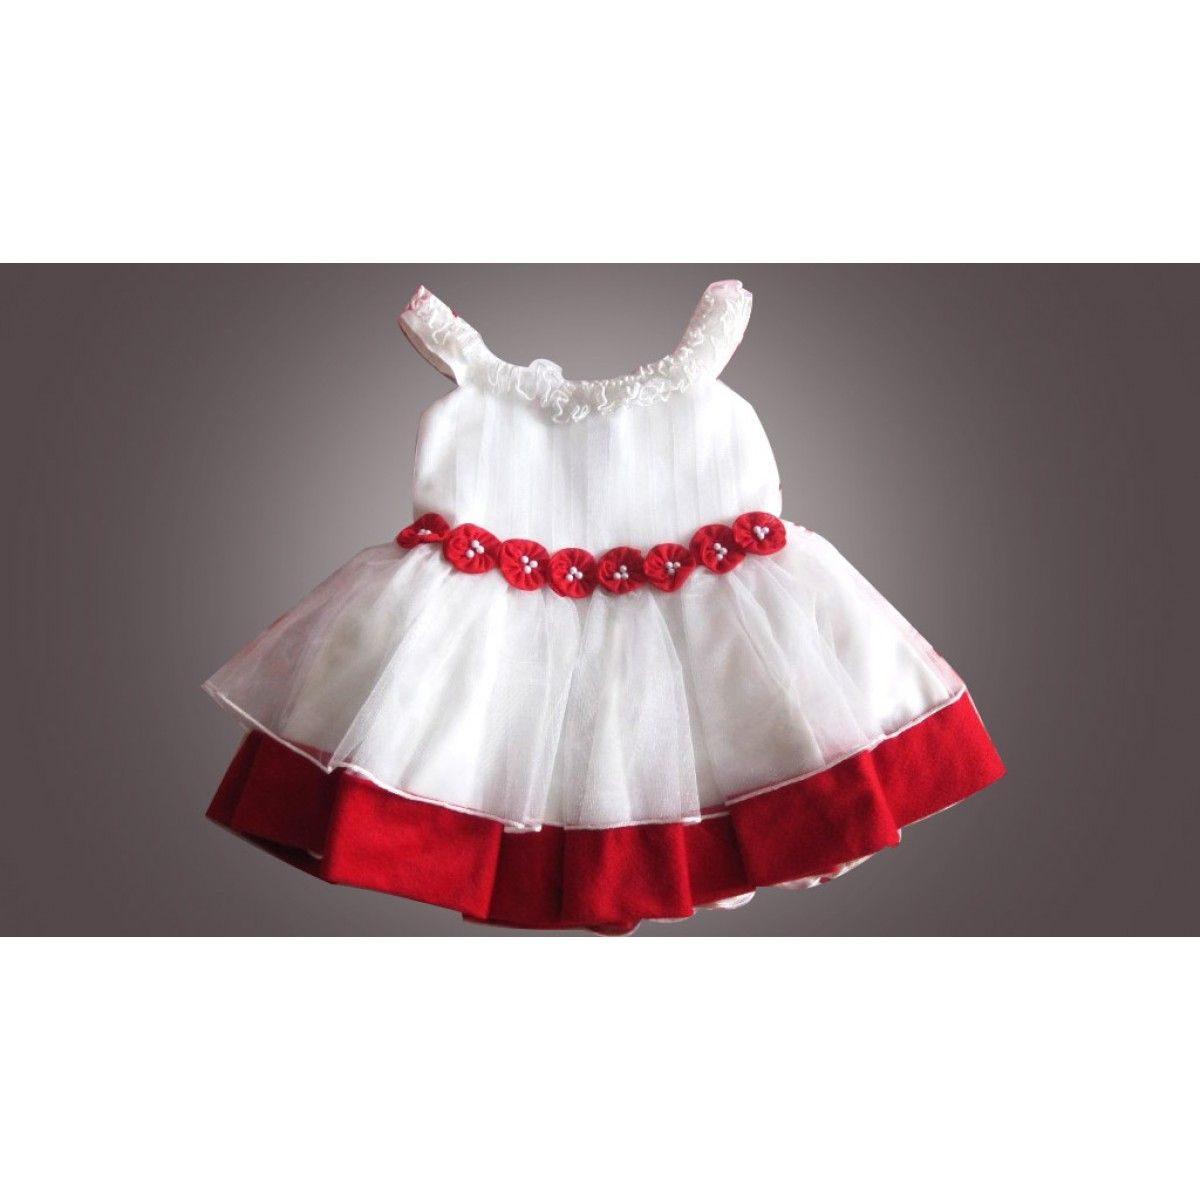 Fashionable Red and White Infant Party Dress in Shimmery Net ...